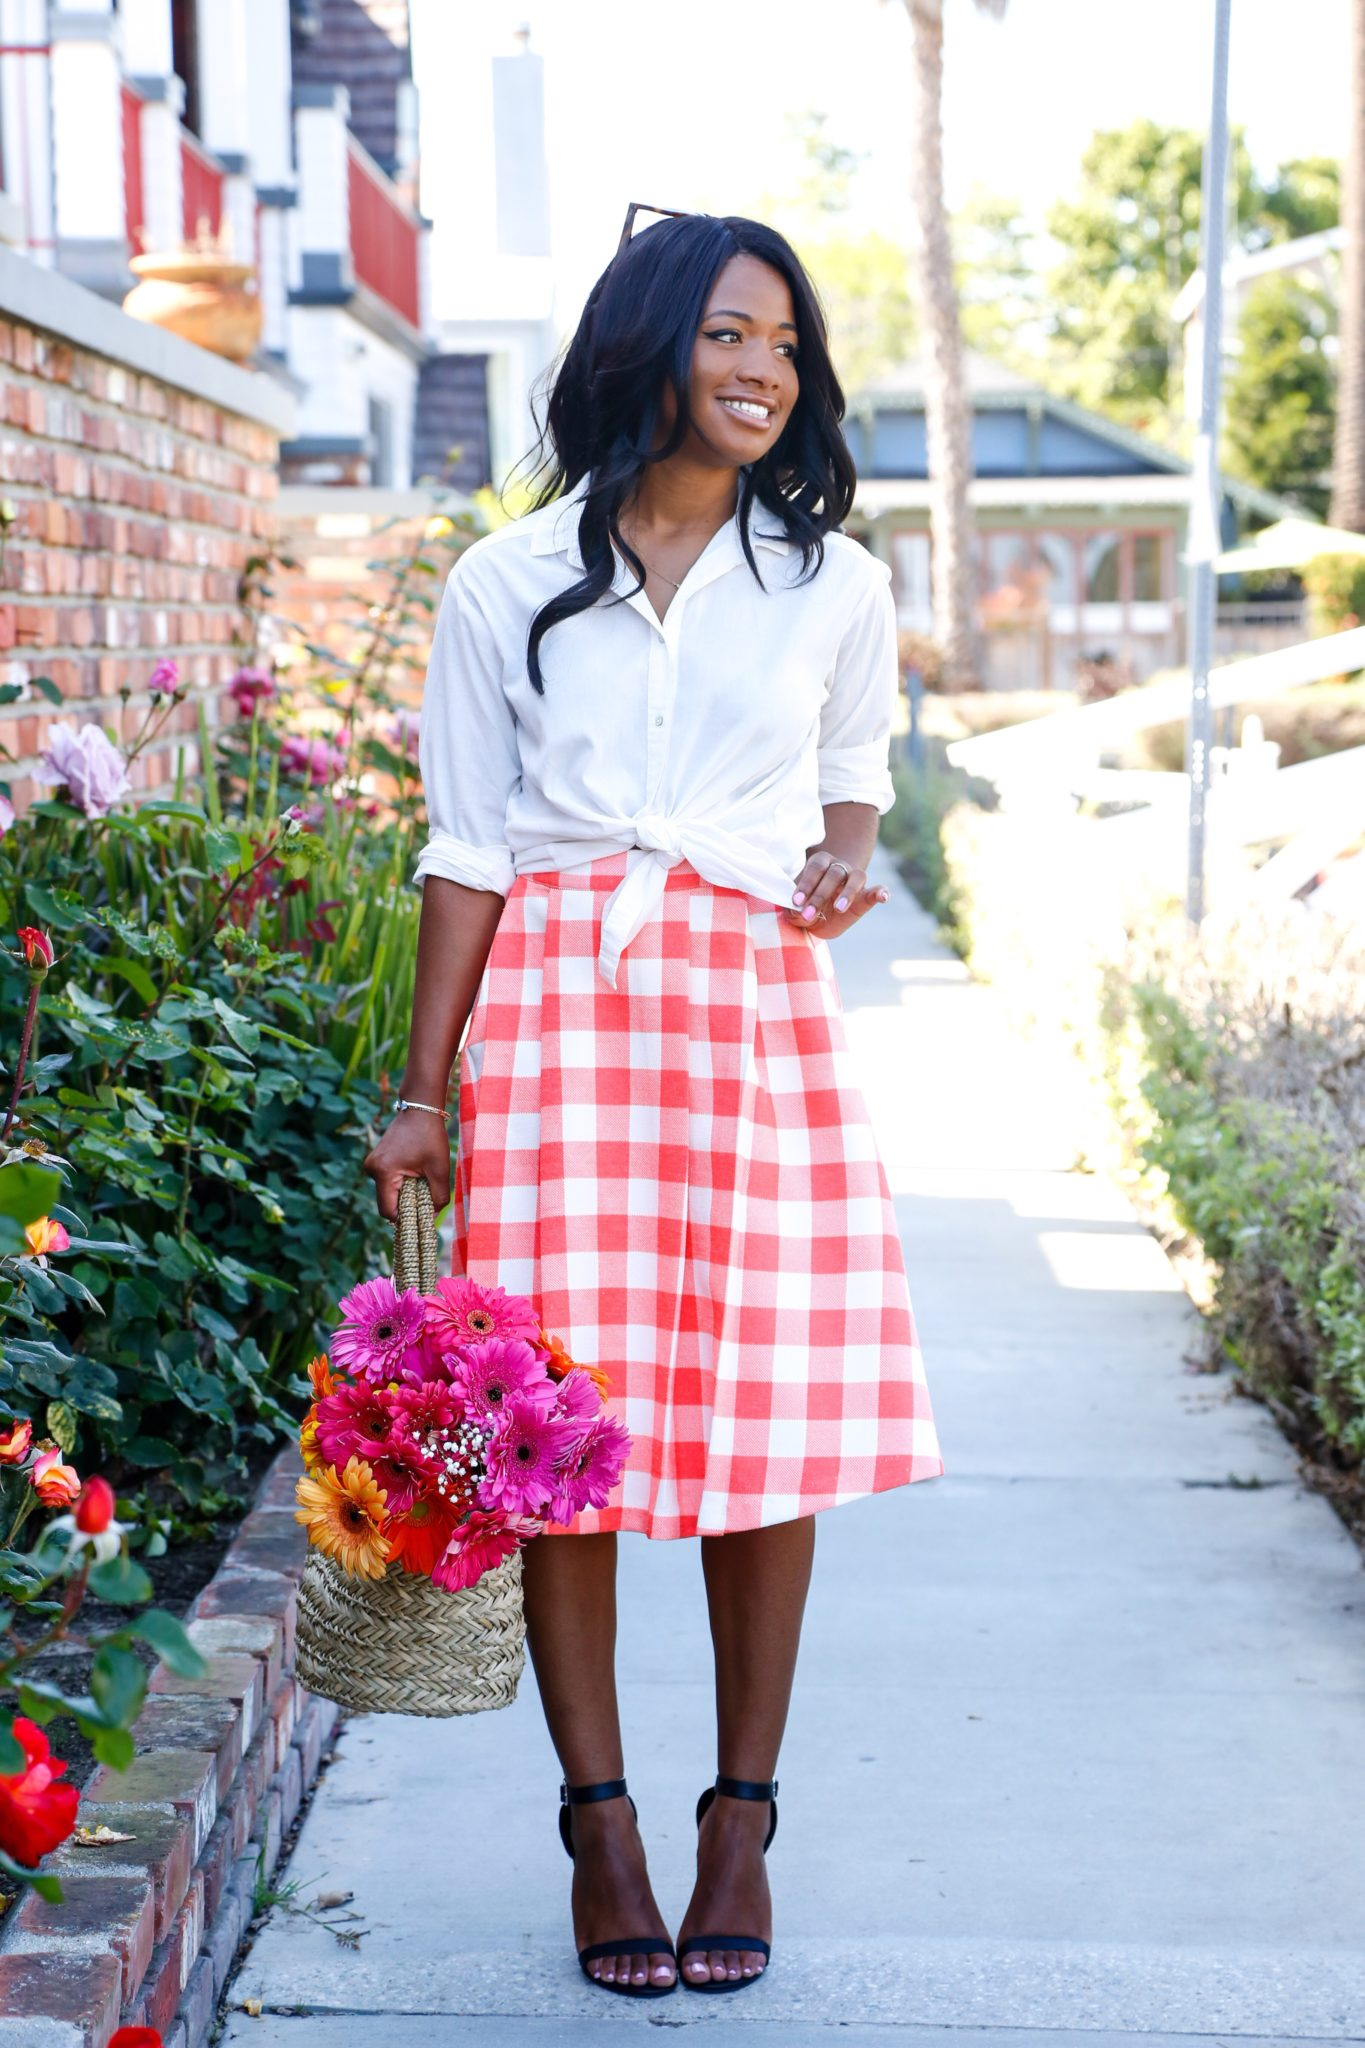 Gingham + Flowers on DowntownDemure.com - Modest Fashion Blog